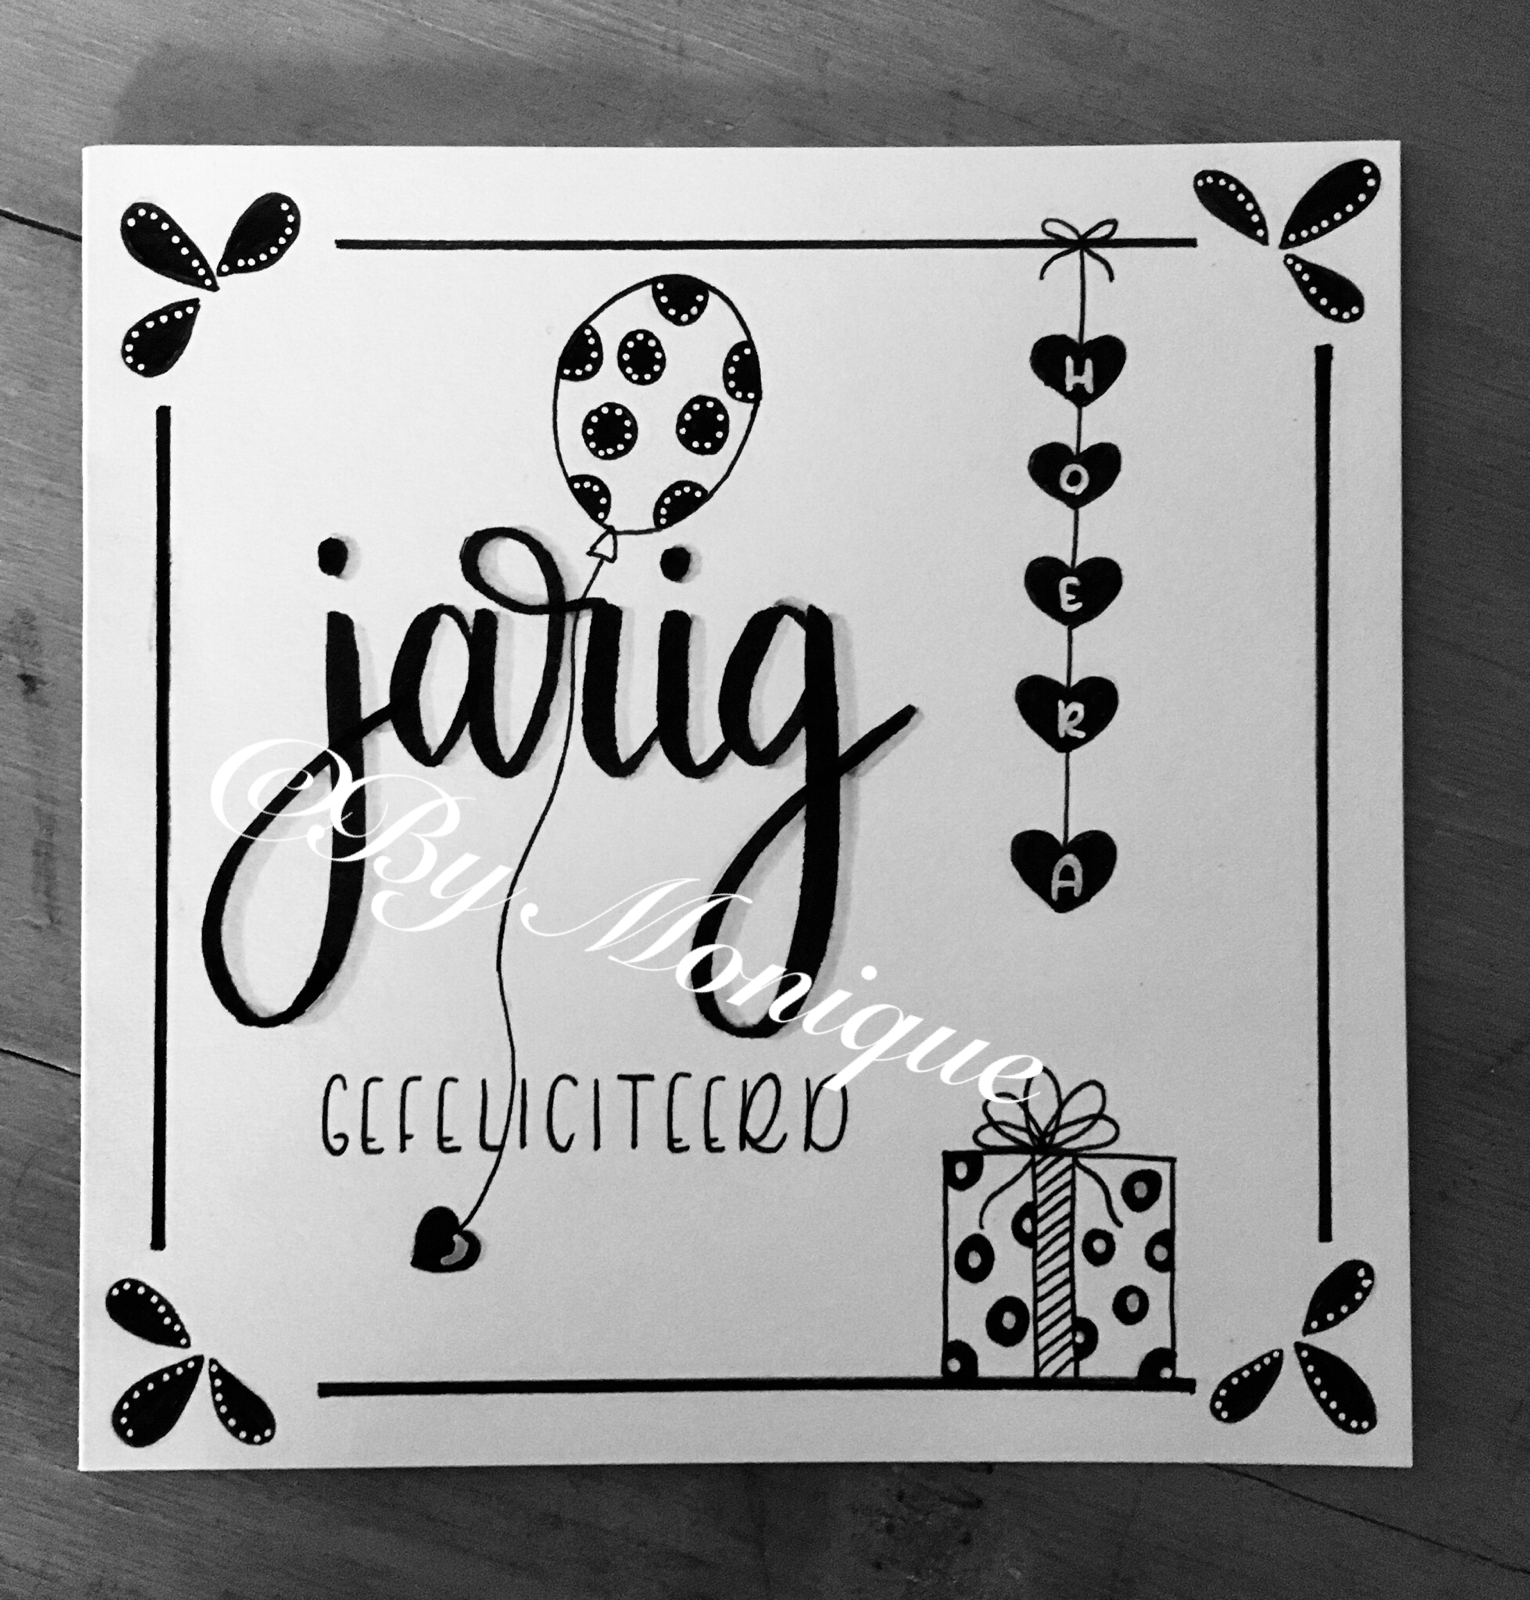 wanneer is one direction jarig Handletteren verjaardag. | handlettering | Pinterest | Cards  wanneer is one direction jarig